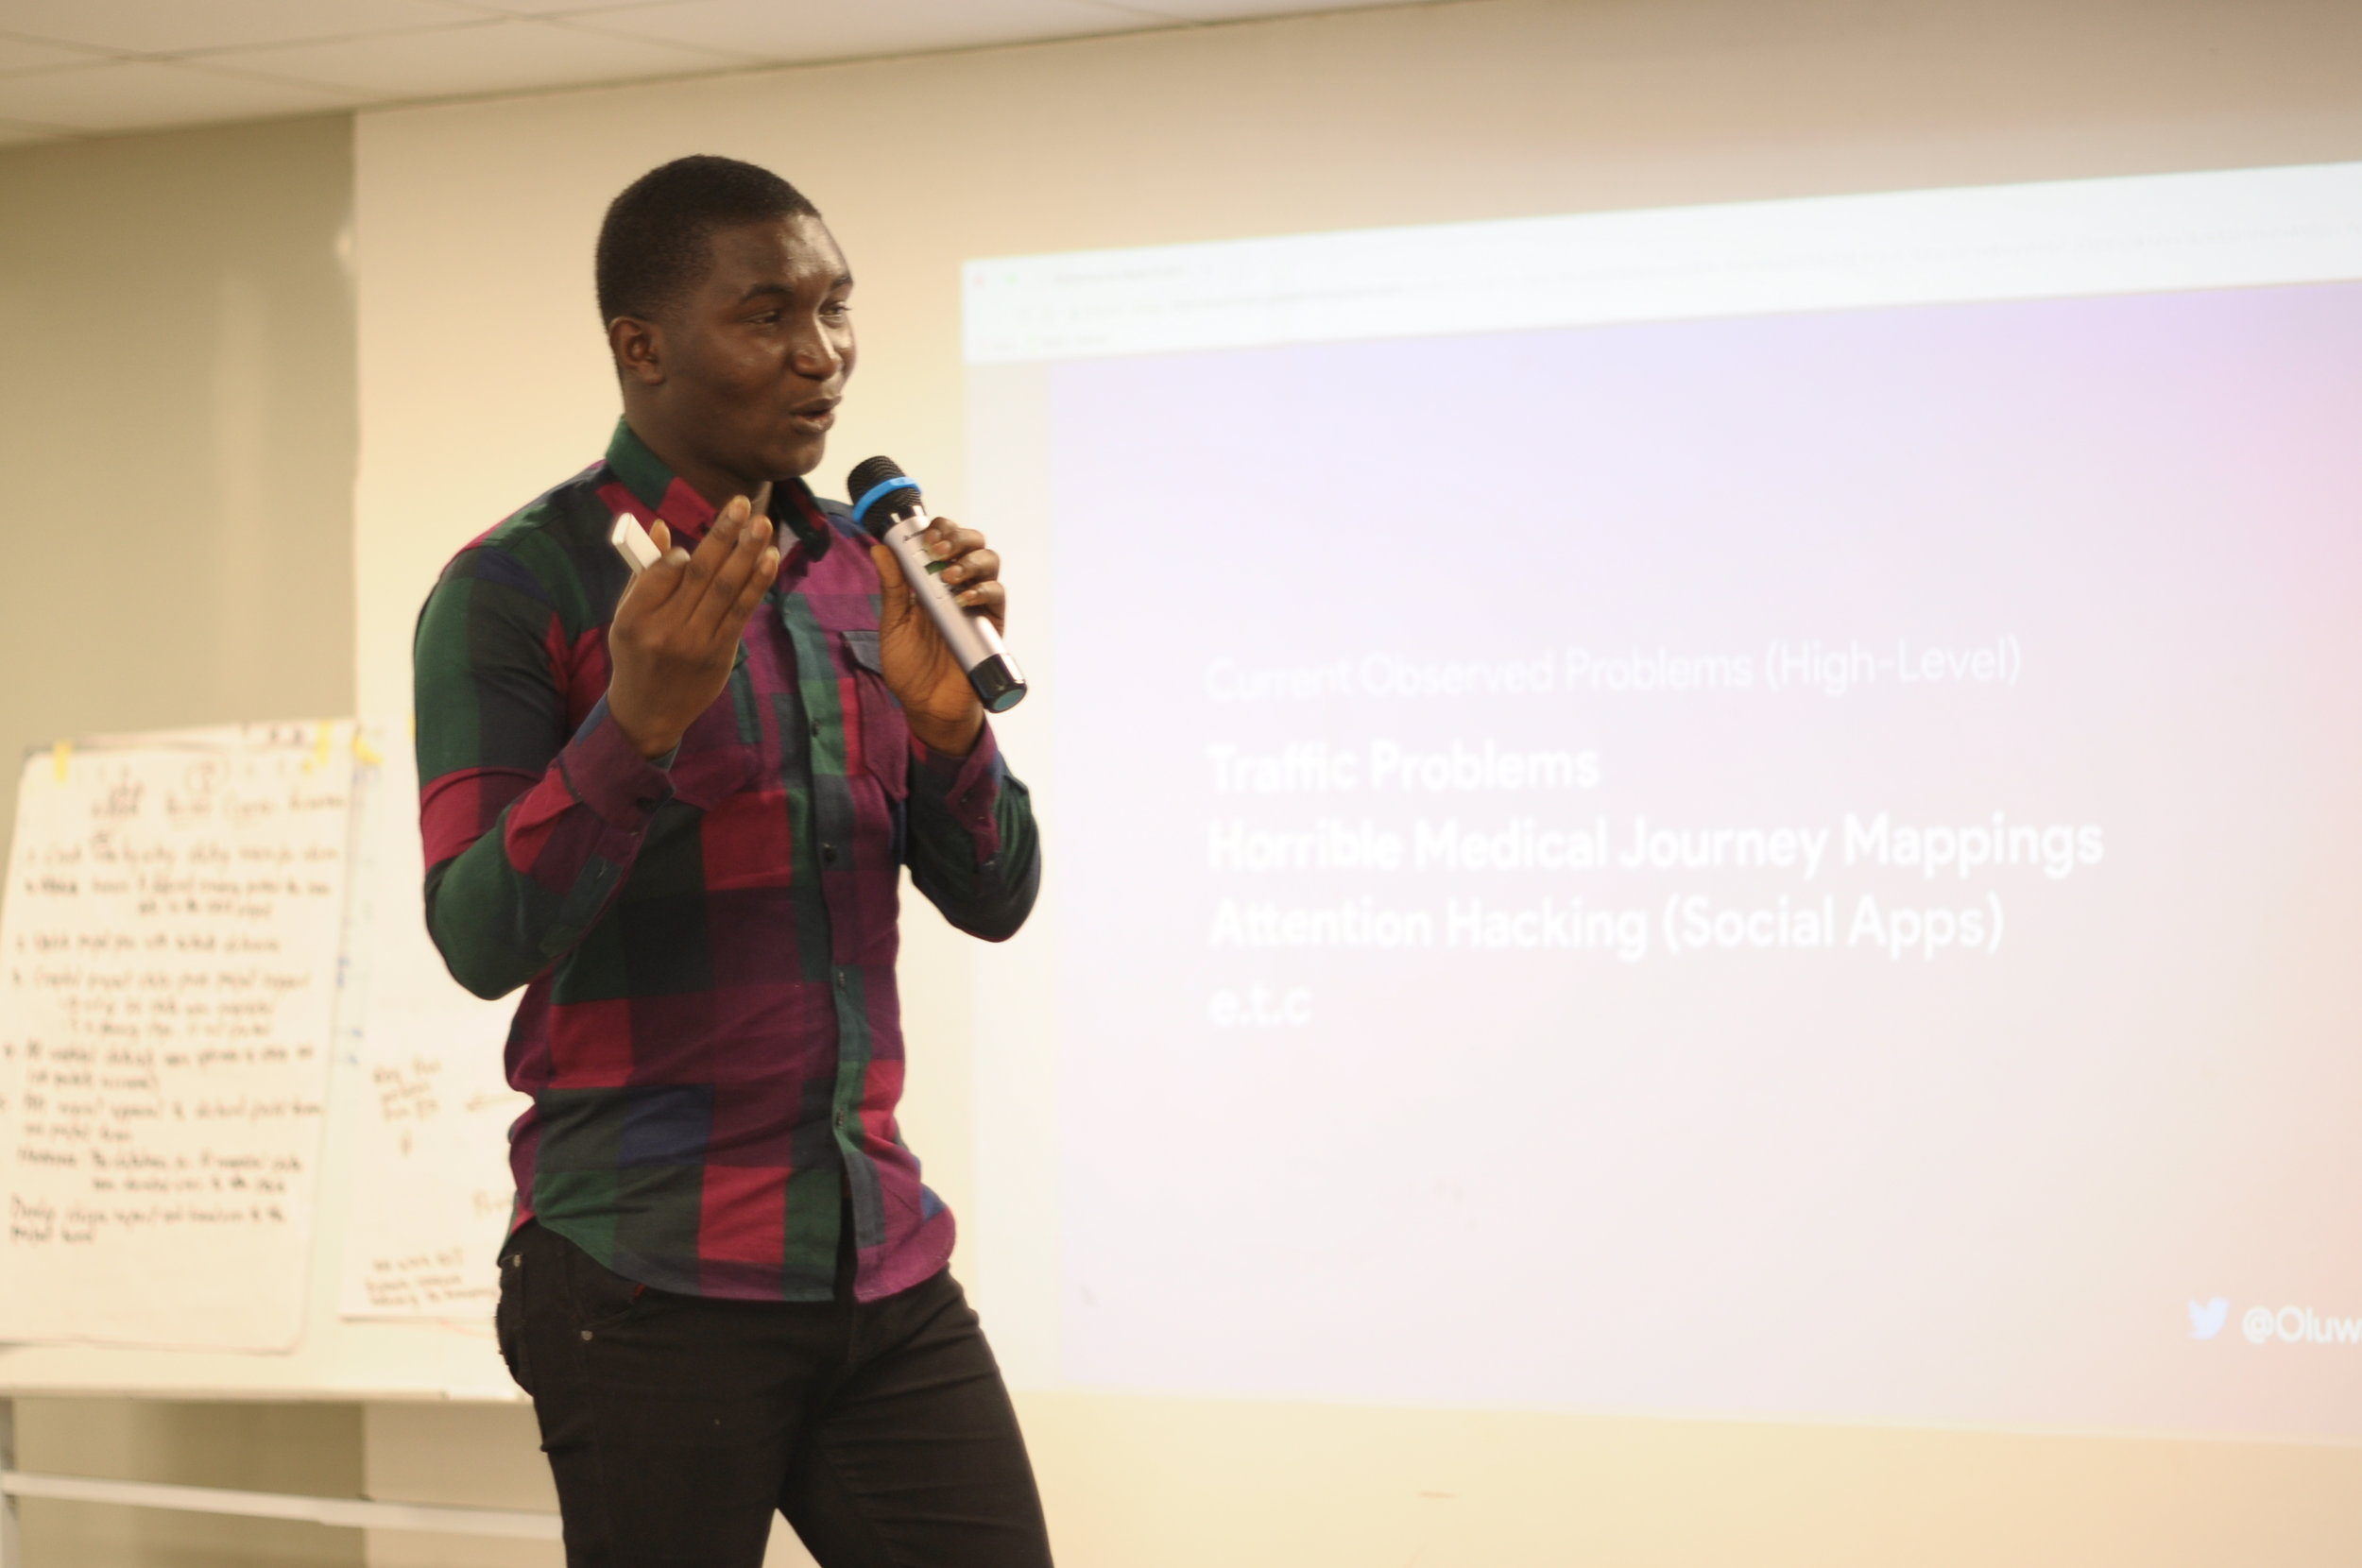 The second presentation, Designing for the Right Problems, was from Oluwatobi Akindunjoye